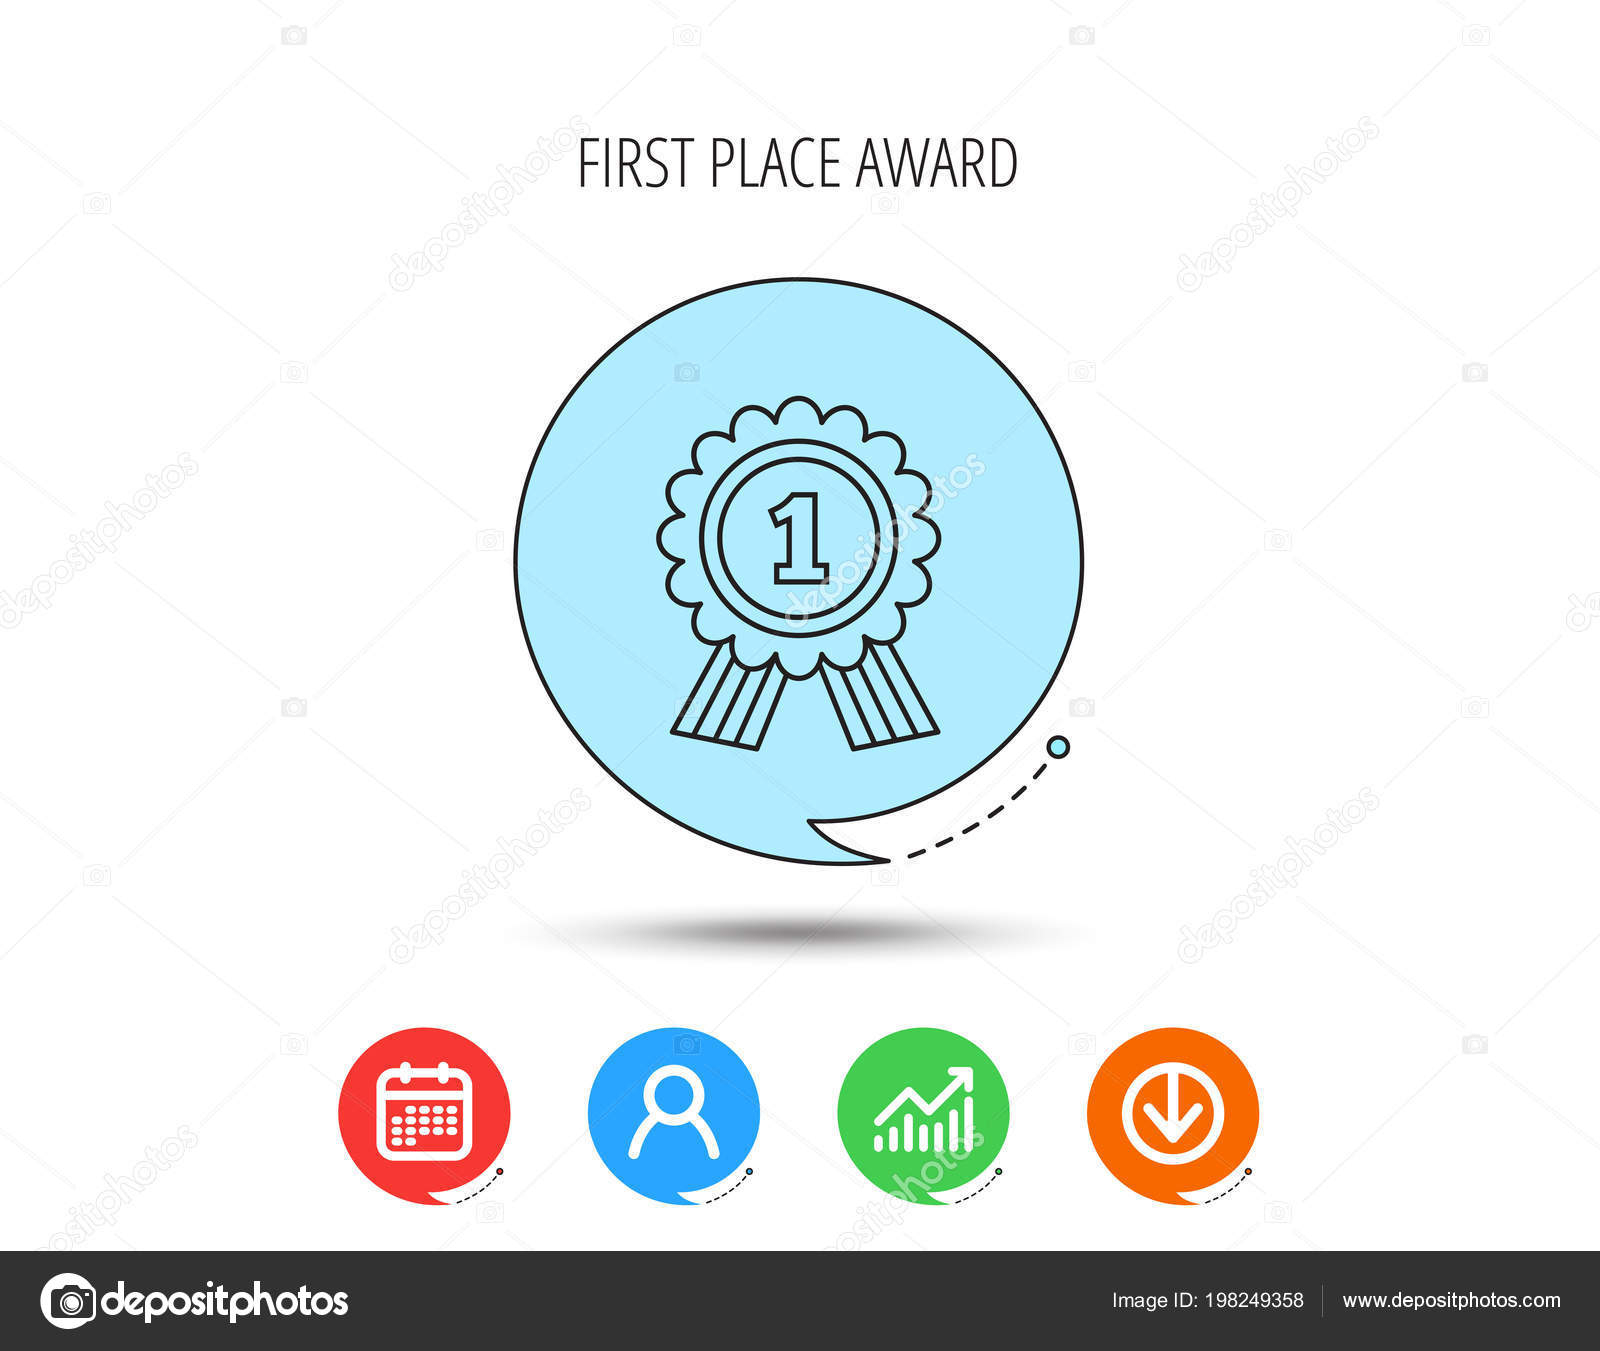 Gold medal award icon  First place sign  — Stock Vector